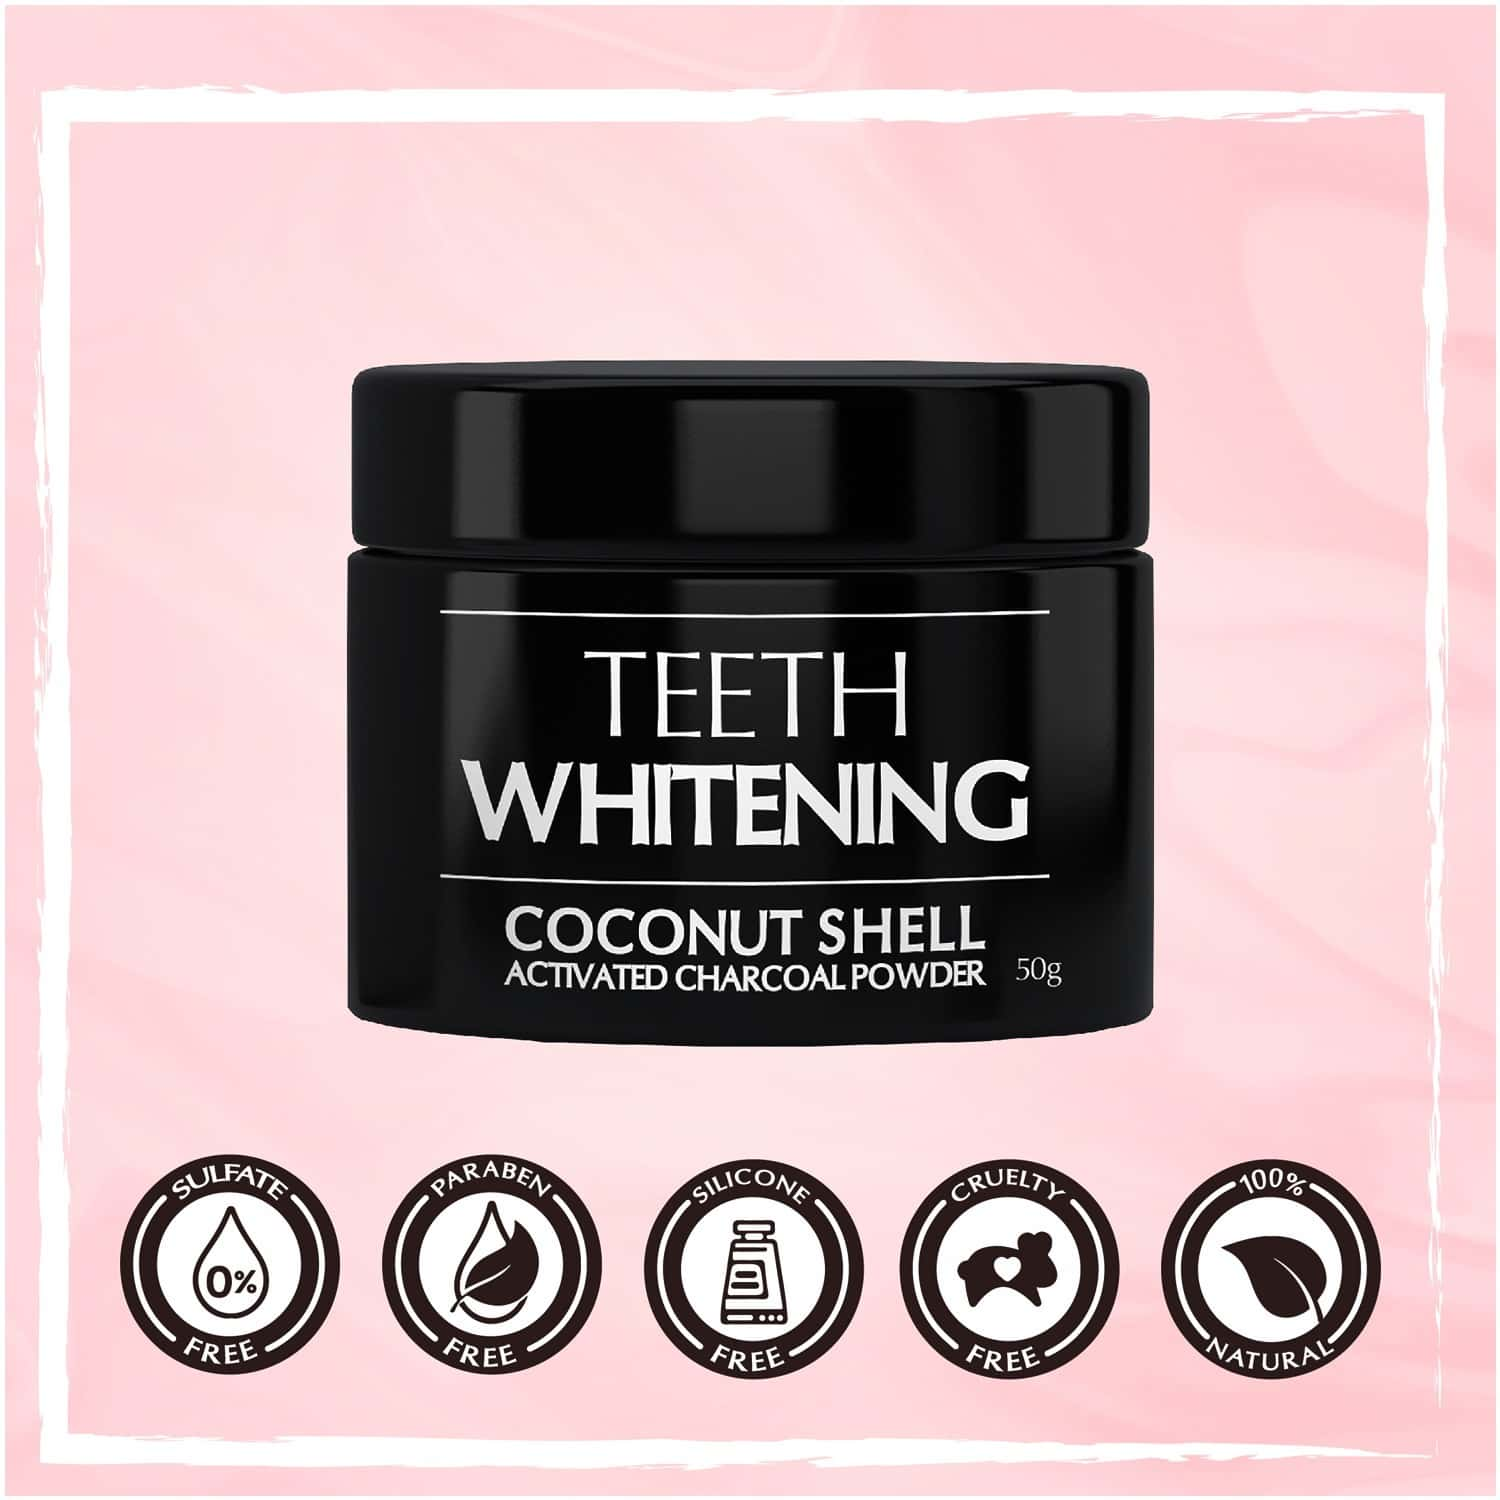 The Beauty Co. Coconut Shell Activated Charcoal Instant Teeth Whitening Powder, 50g